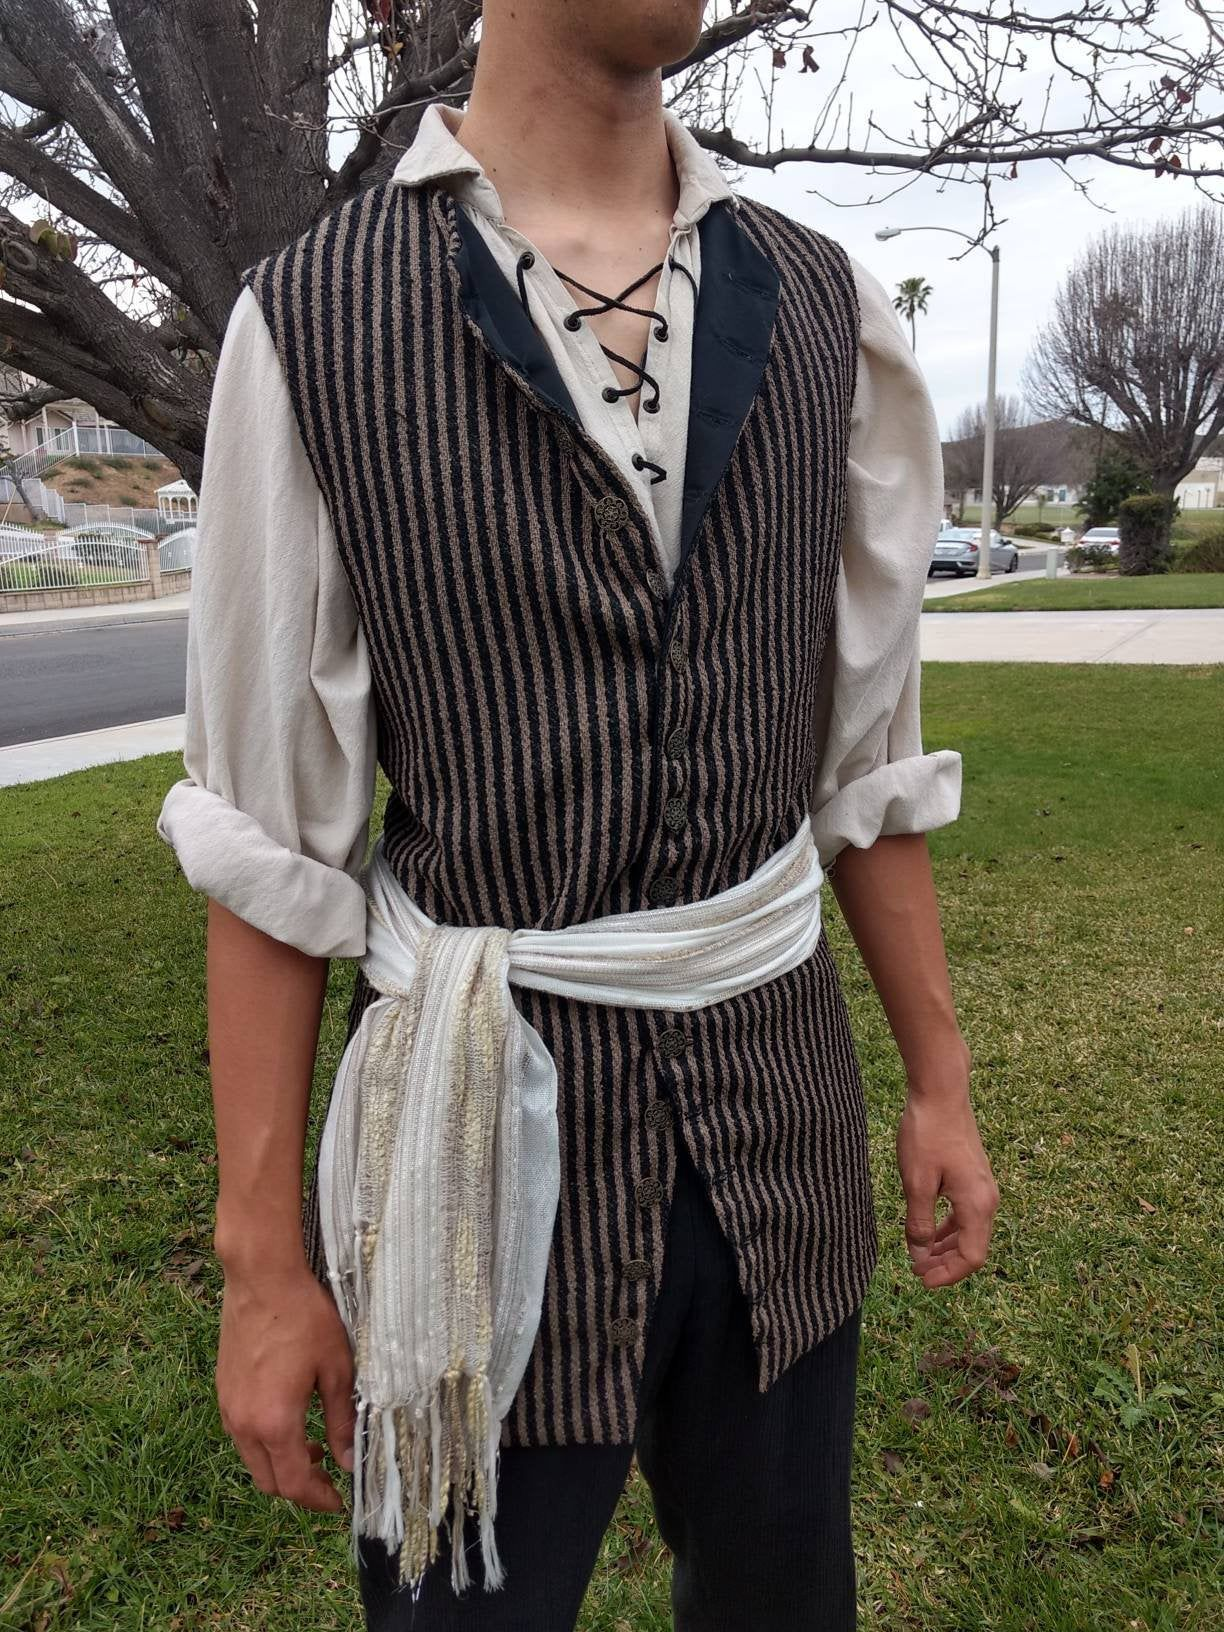 Pirate Shirt Steampunk Costumes SCA LARP Cosplay Renaissance Shirt Custom Size AND Color Men/'s Medieval